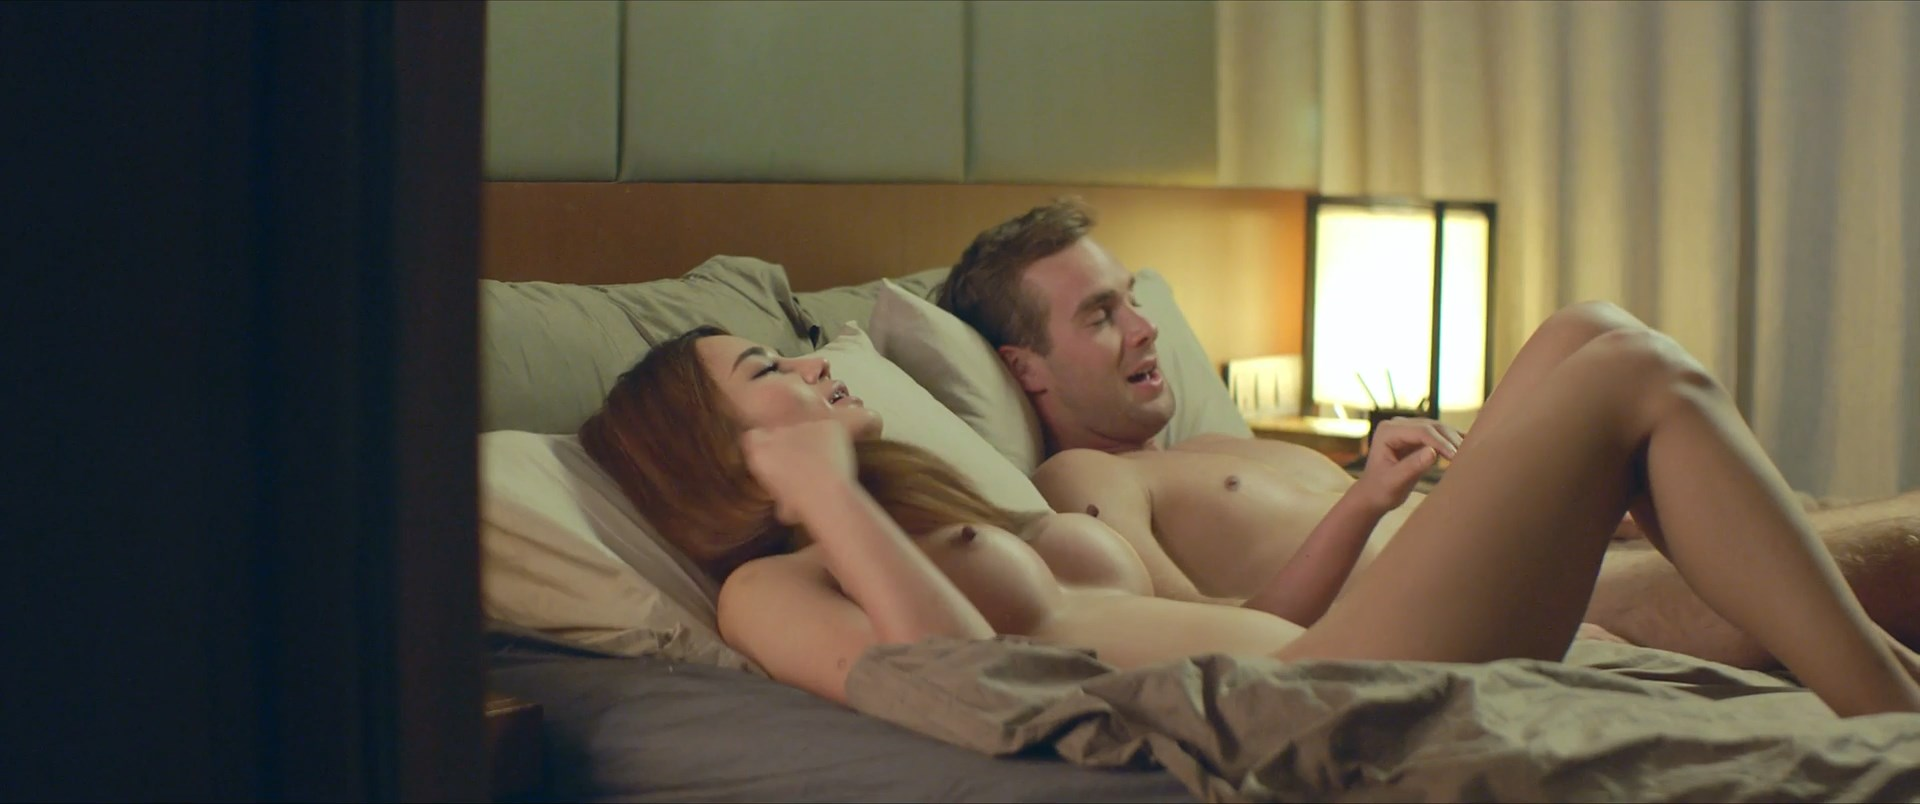 Gentle touch sex video